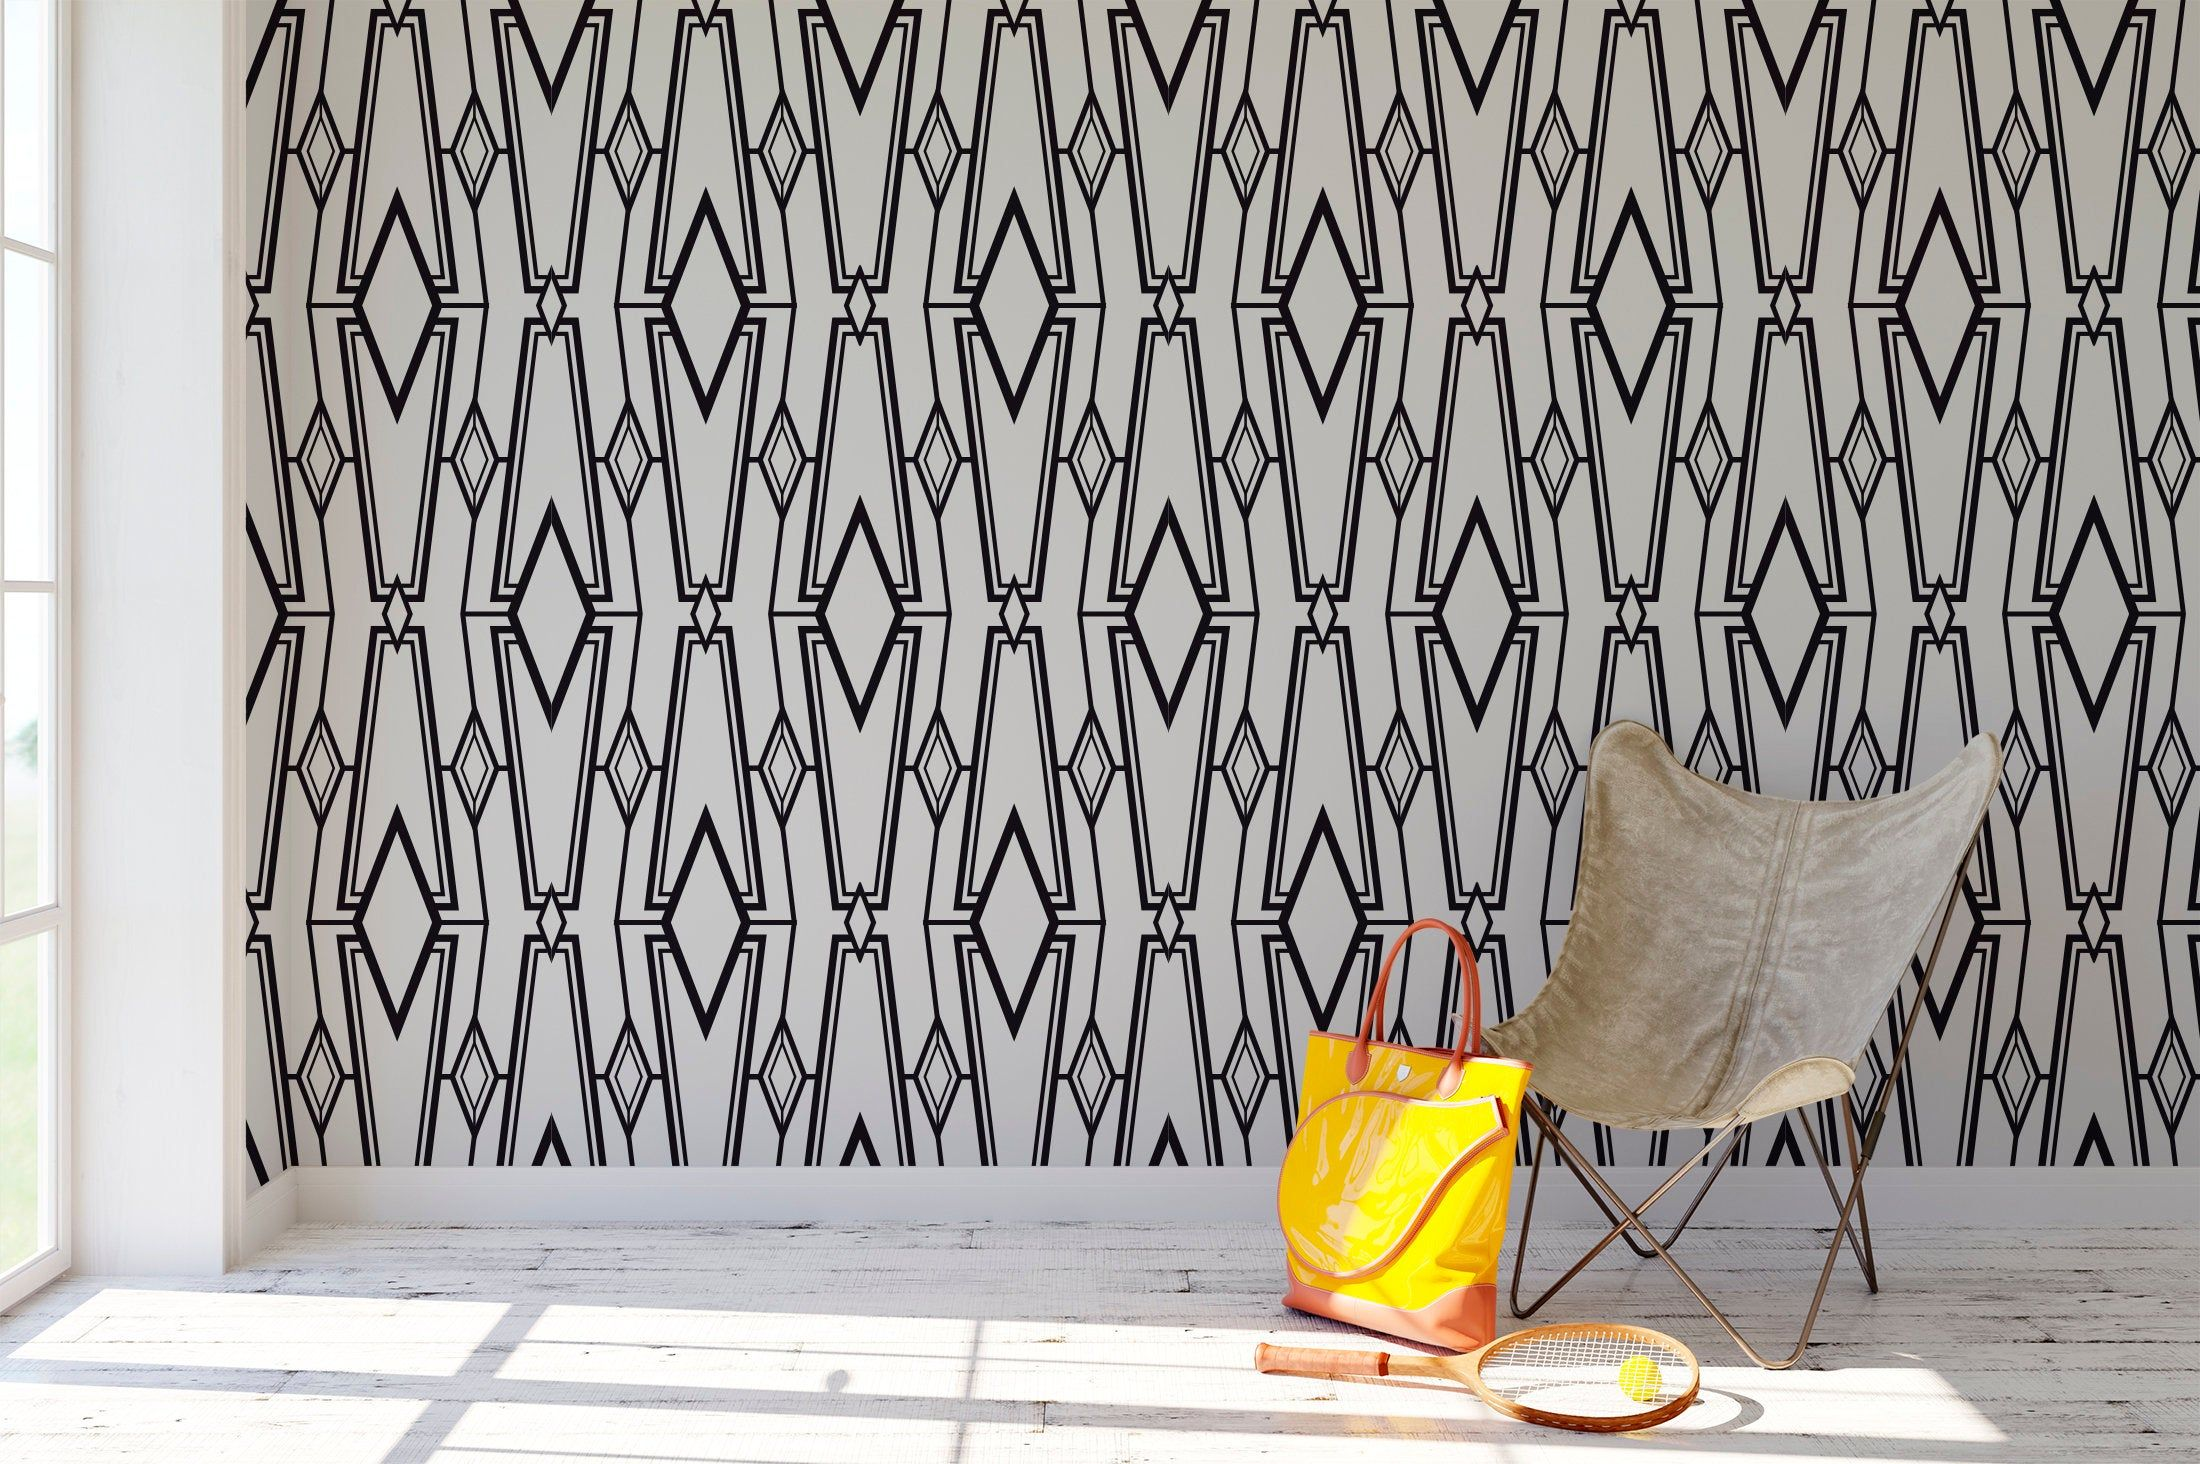 High Quality Peel And Stick Removable Self Adhesive Wallpaper Etsy Peel And Stick Wallpaper Tribal Wallpaper Home Wallpaper